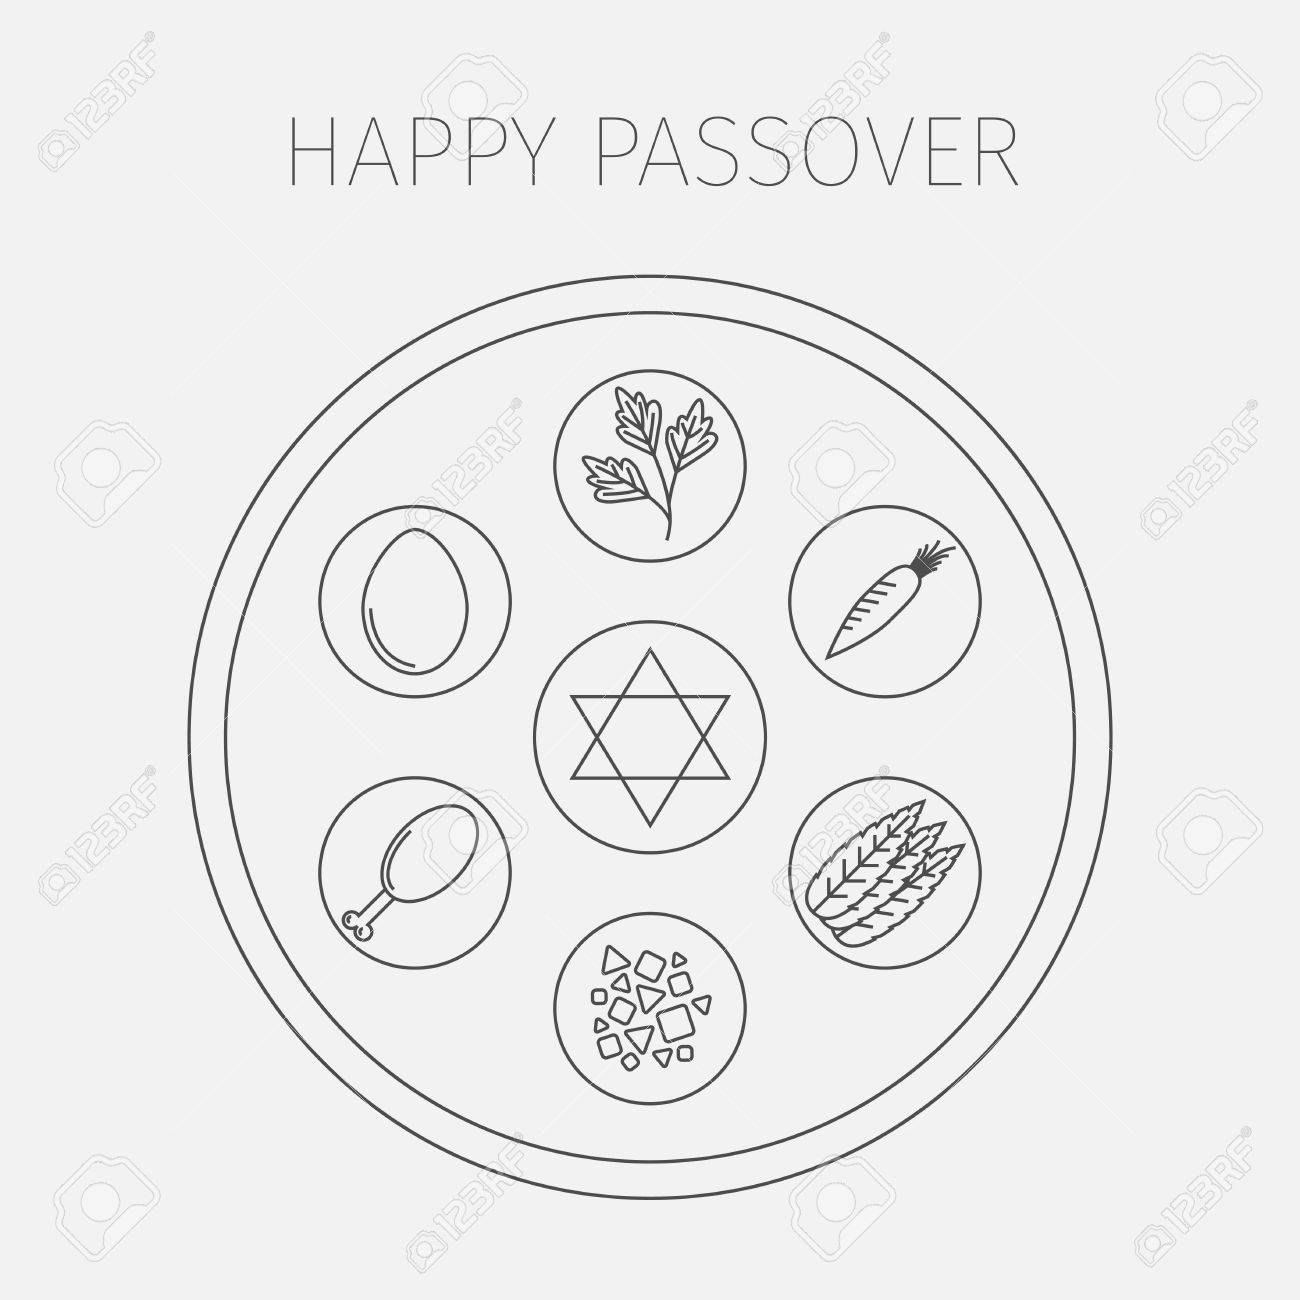 Passover Seder Plate With Line Icons Vector Stock Photo Picture